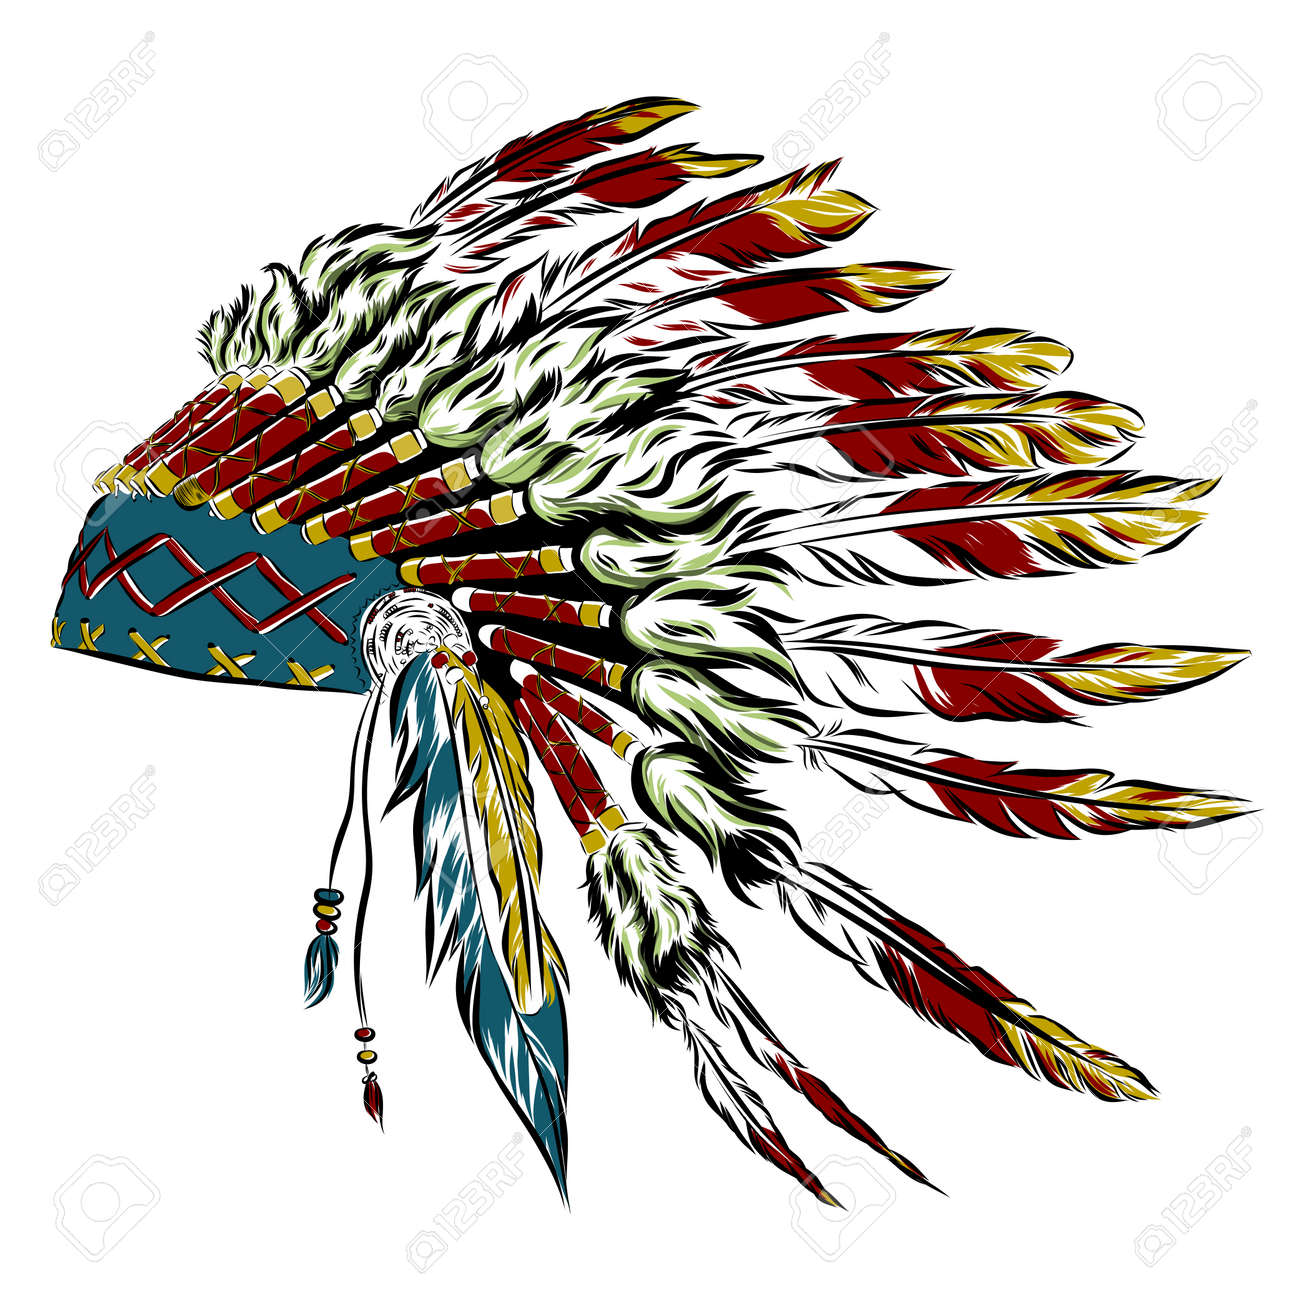 native american indian headdress with feathers in a sketch style rh 123rf com indian feather headdress clipart